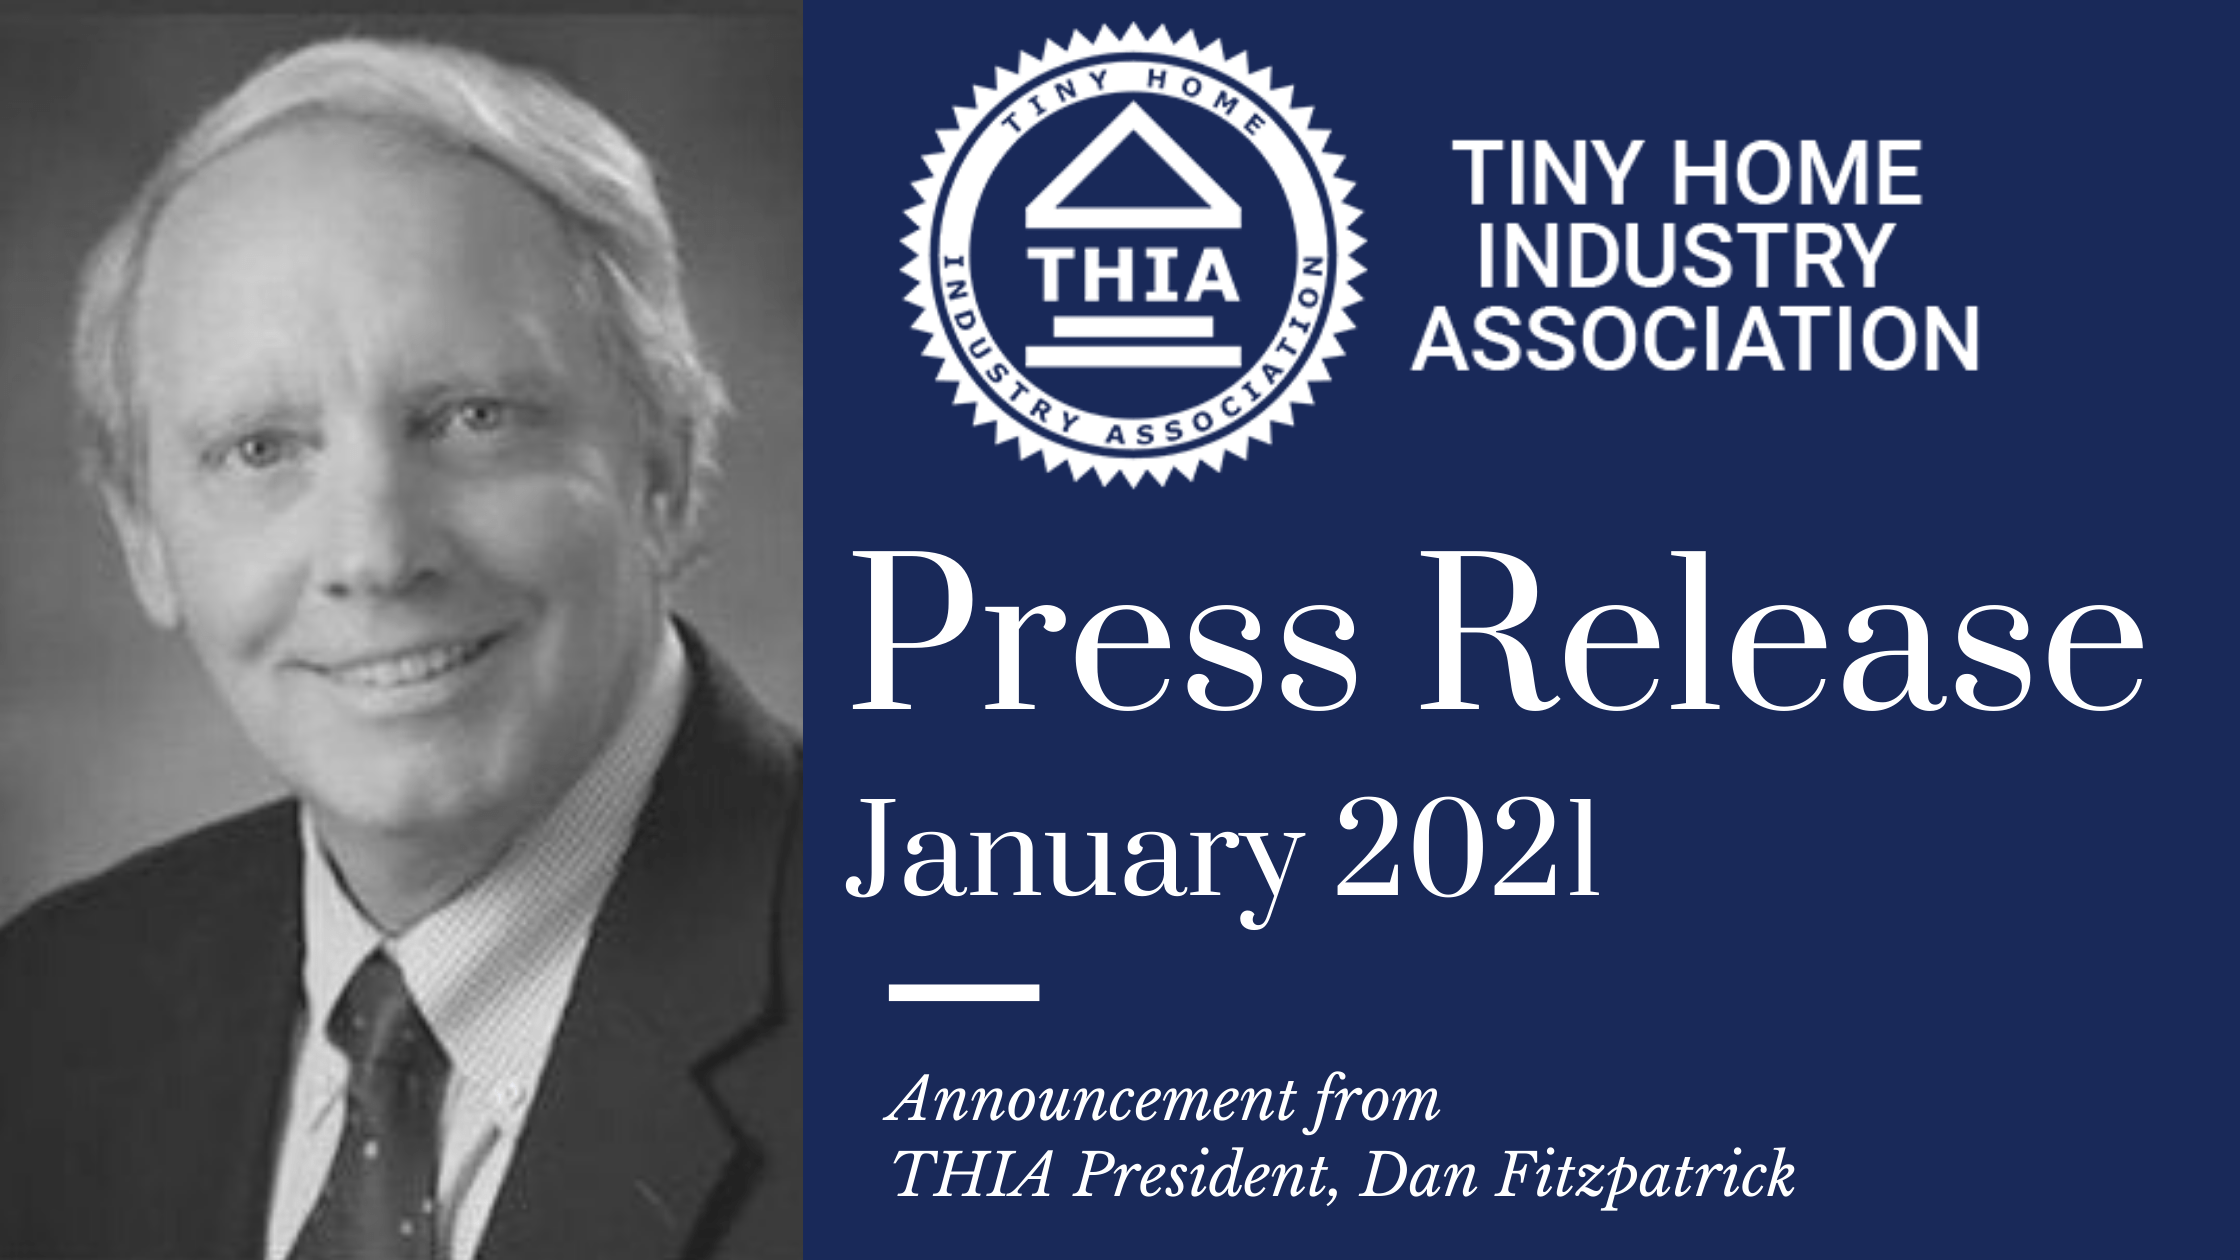 Tiny Home Industry Association Brings on a New Director